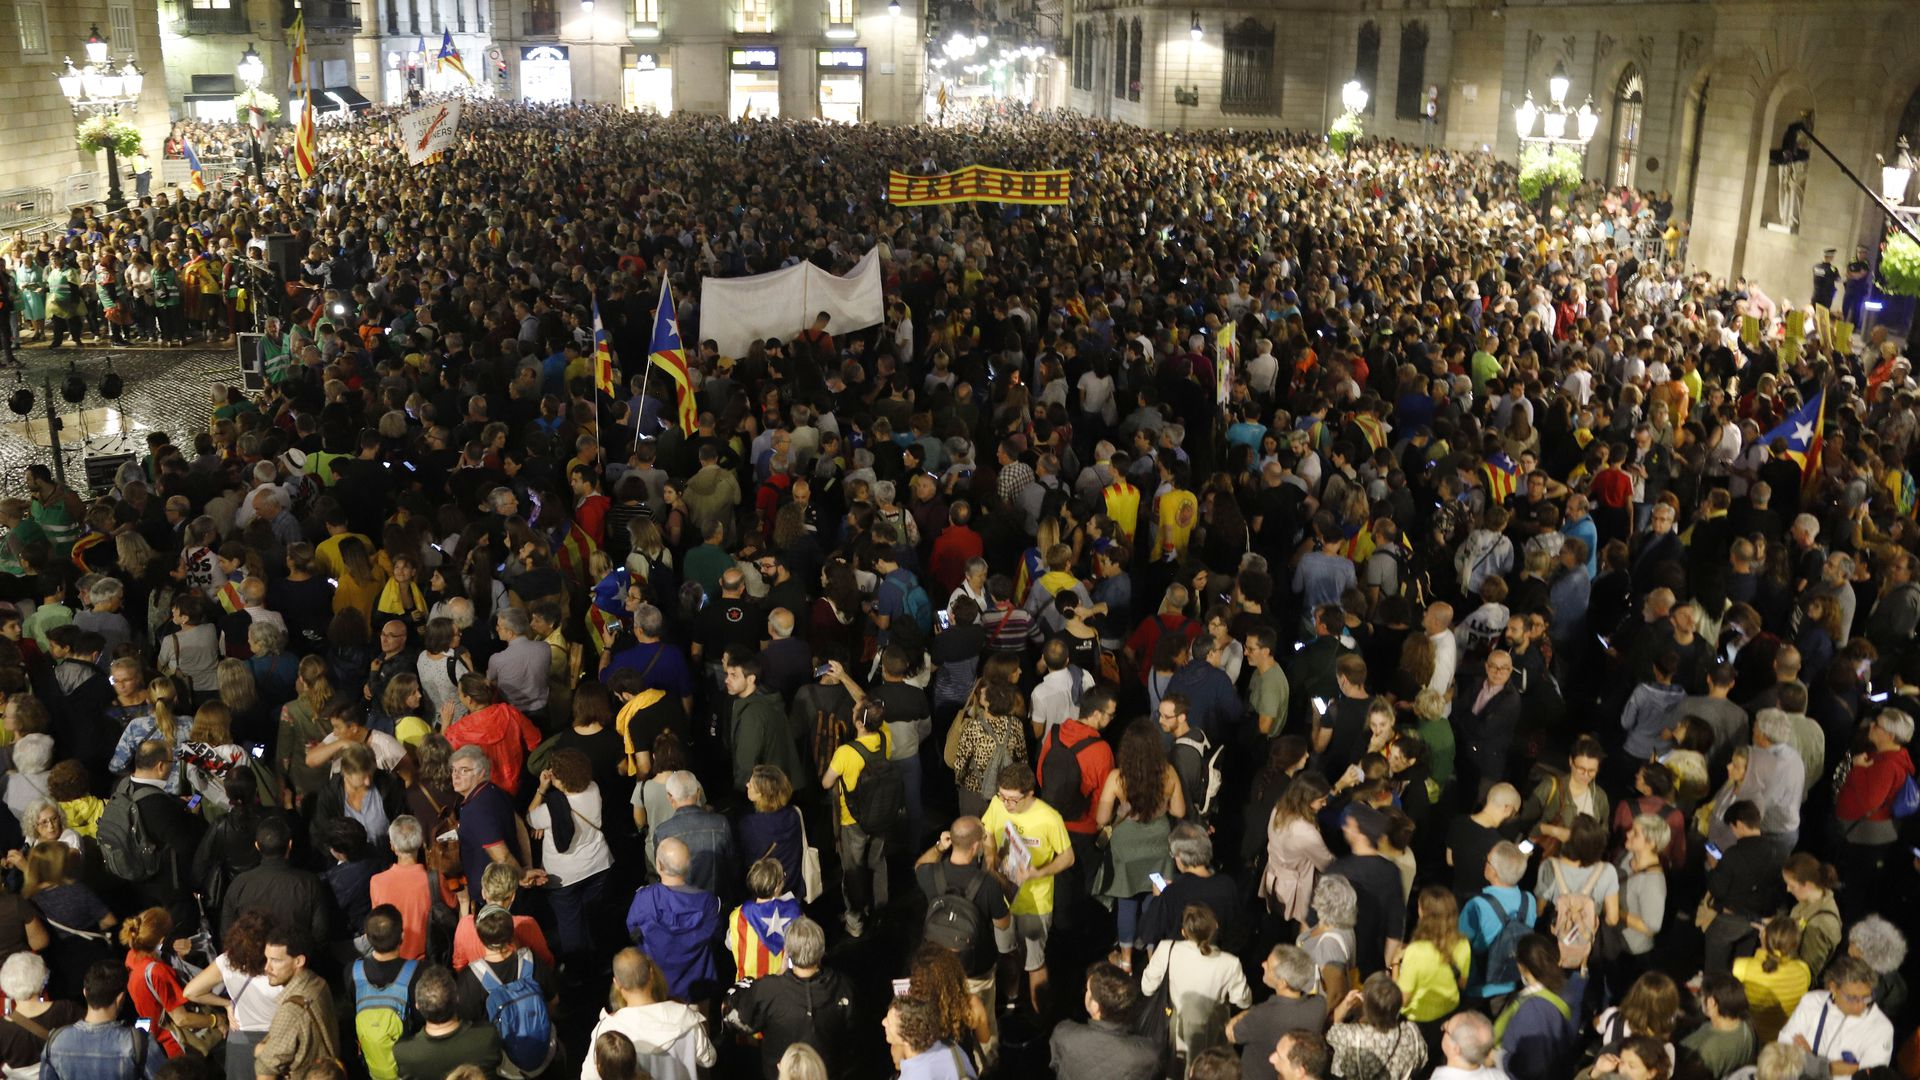 3. Europe: Outrage in Catalonia over verdict